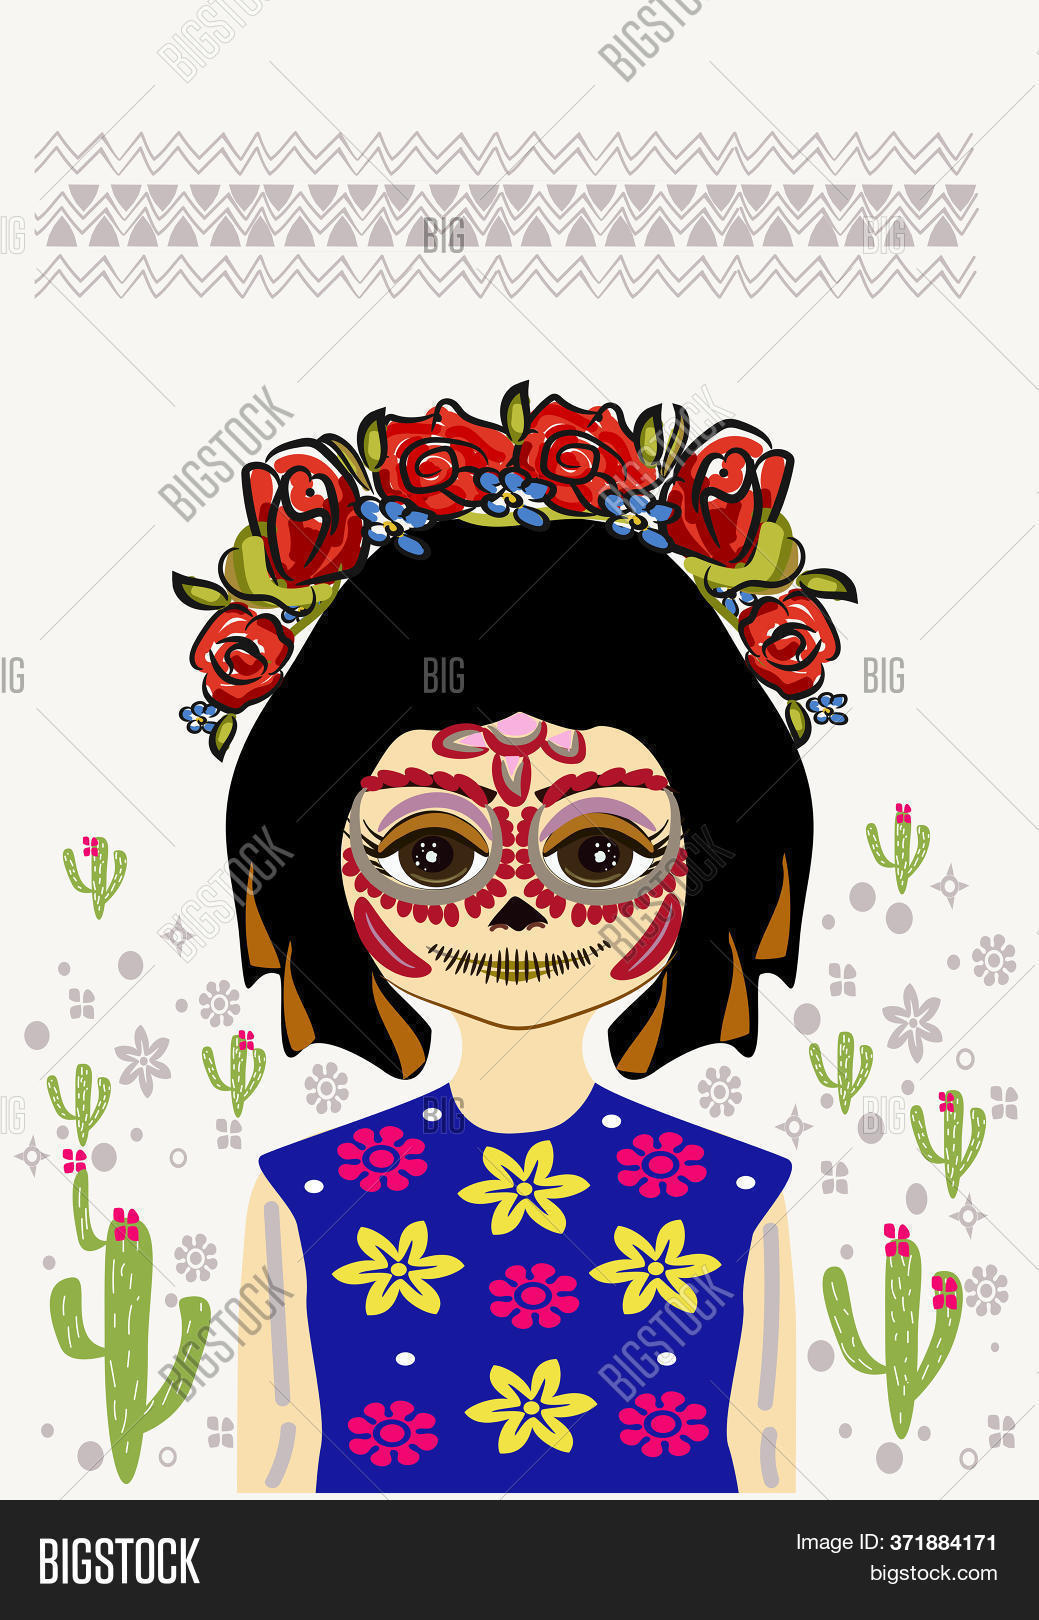 Holiday Mexico Day Image Photo Free Trial Bigstock